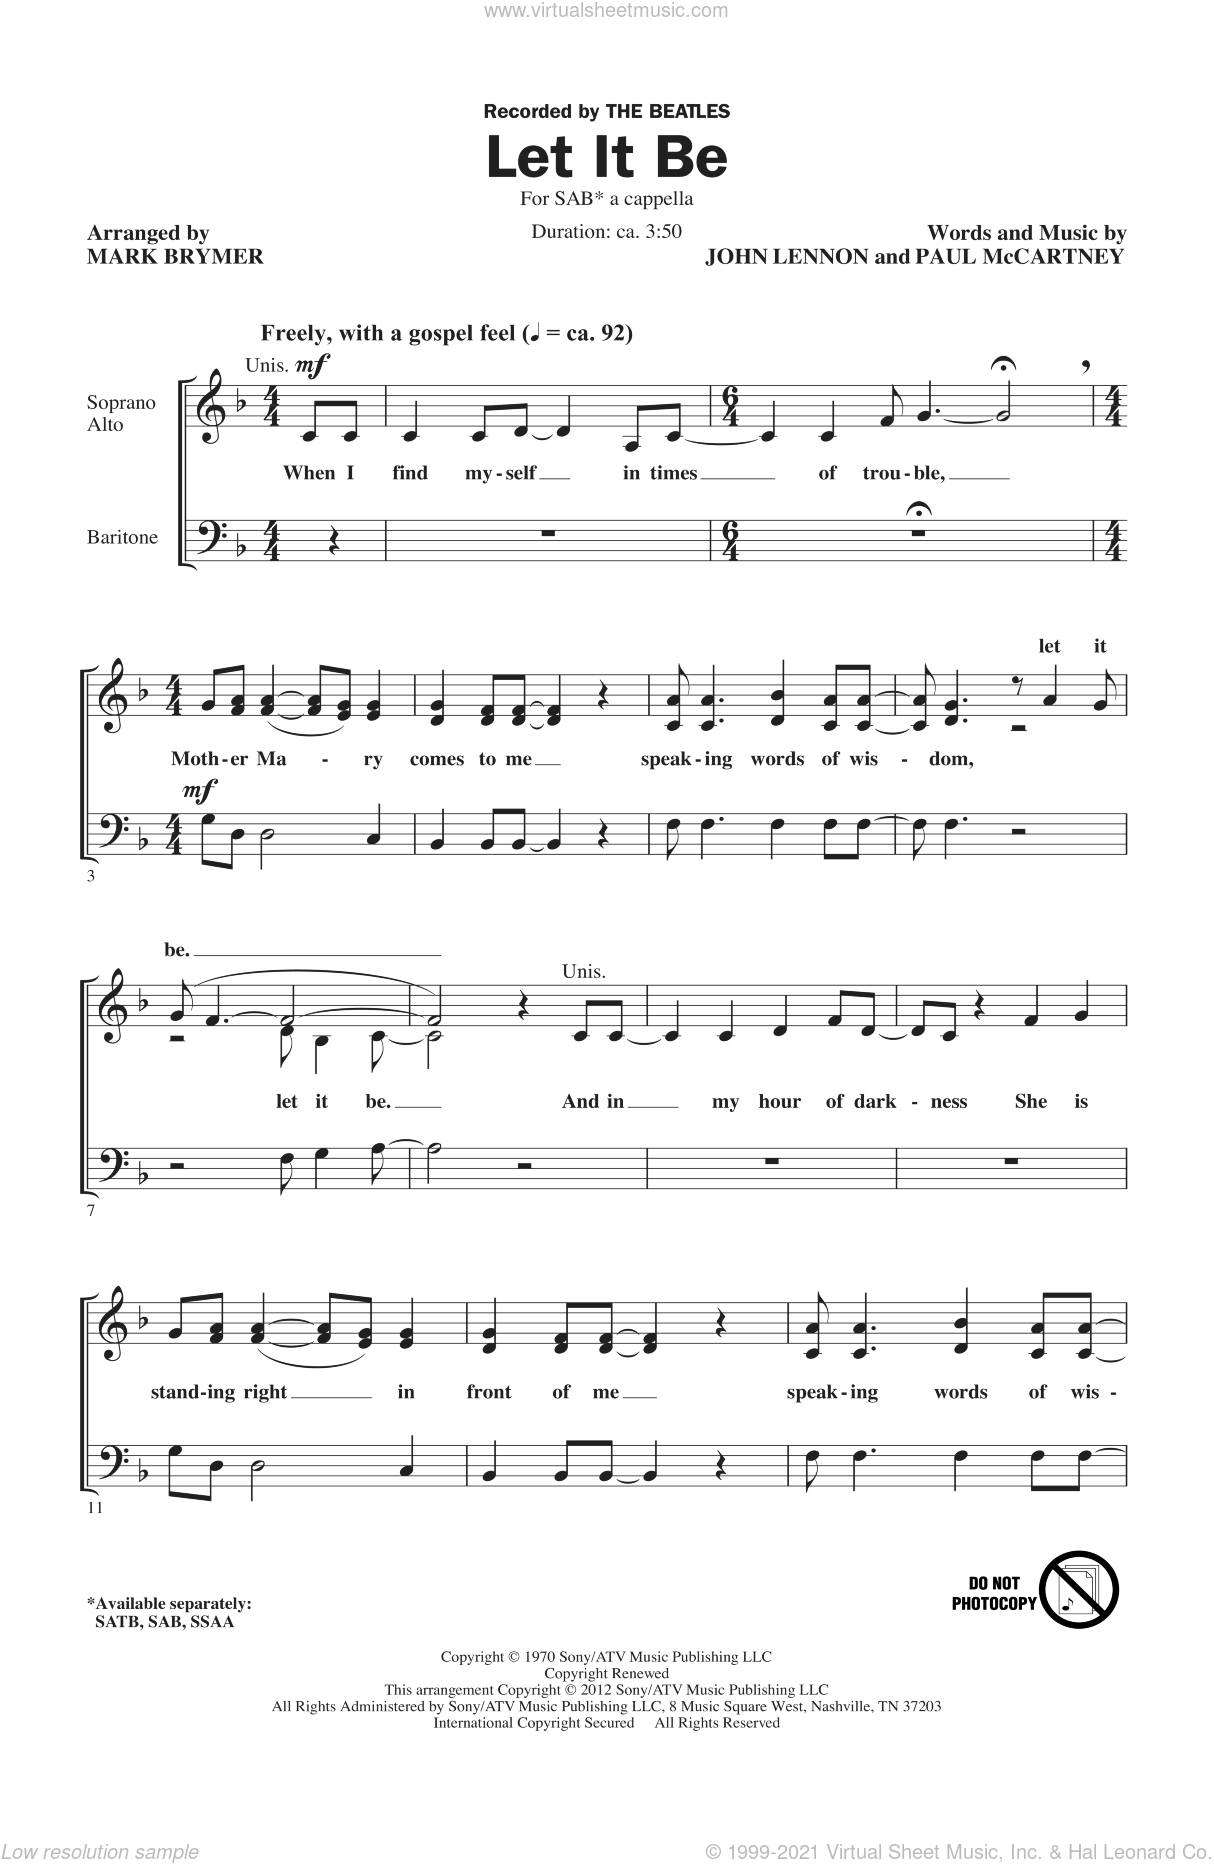 Let It Be sheet music for choir and piano (SAB) by Mark Brymer